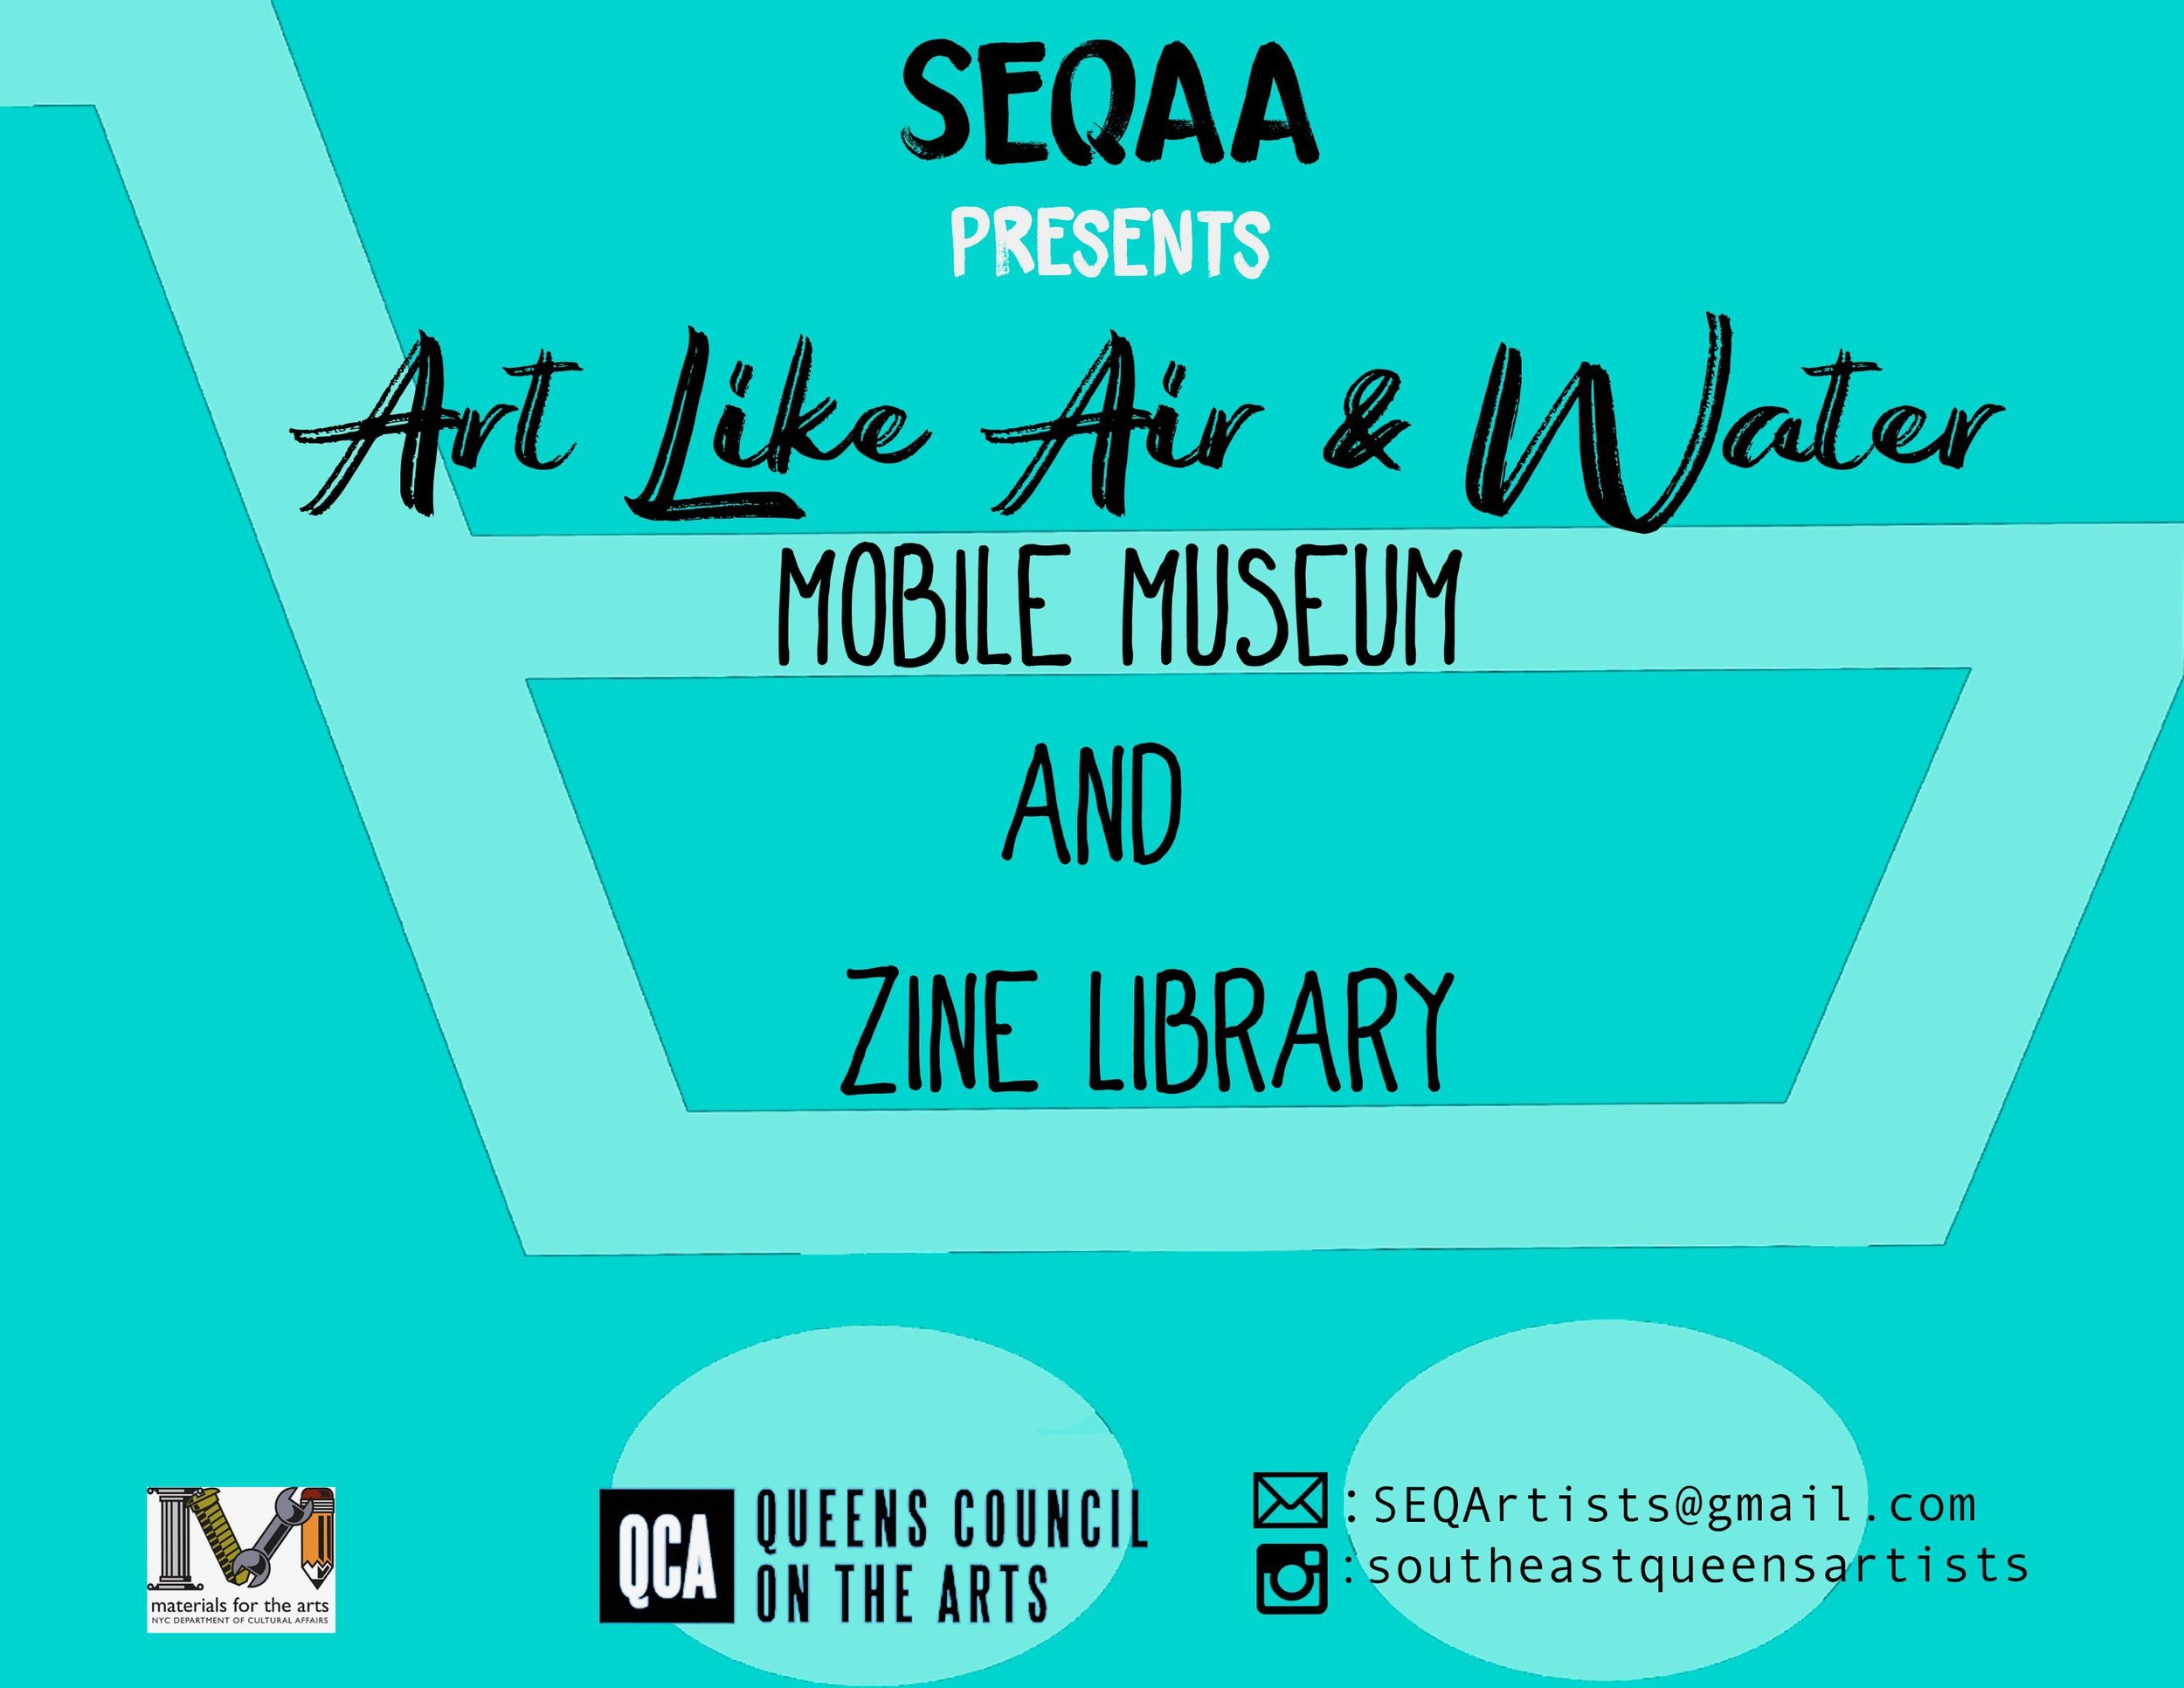 The Southeast Queens Artist Alliance opened its mobile museum and zine library in Jamaica. Image via the SEQA.